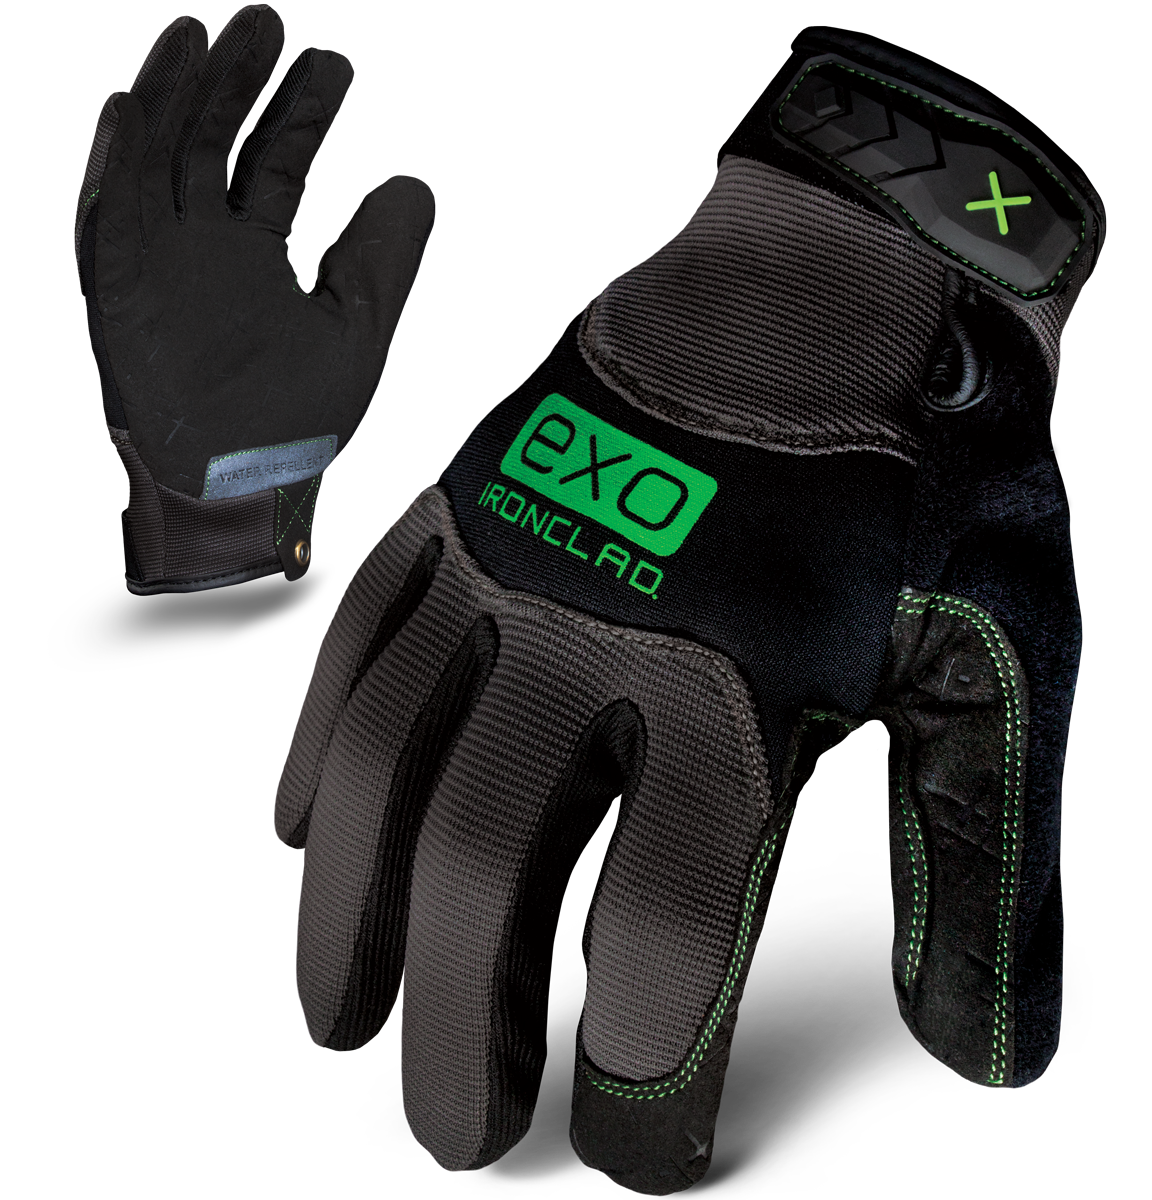 Ironclad EXO - Modern Water Resistant  - EXO-MWR